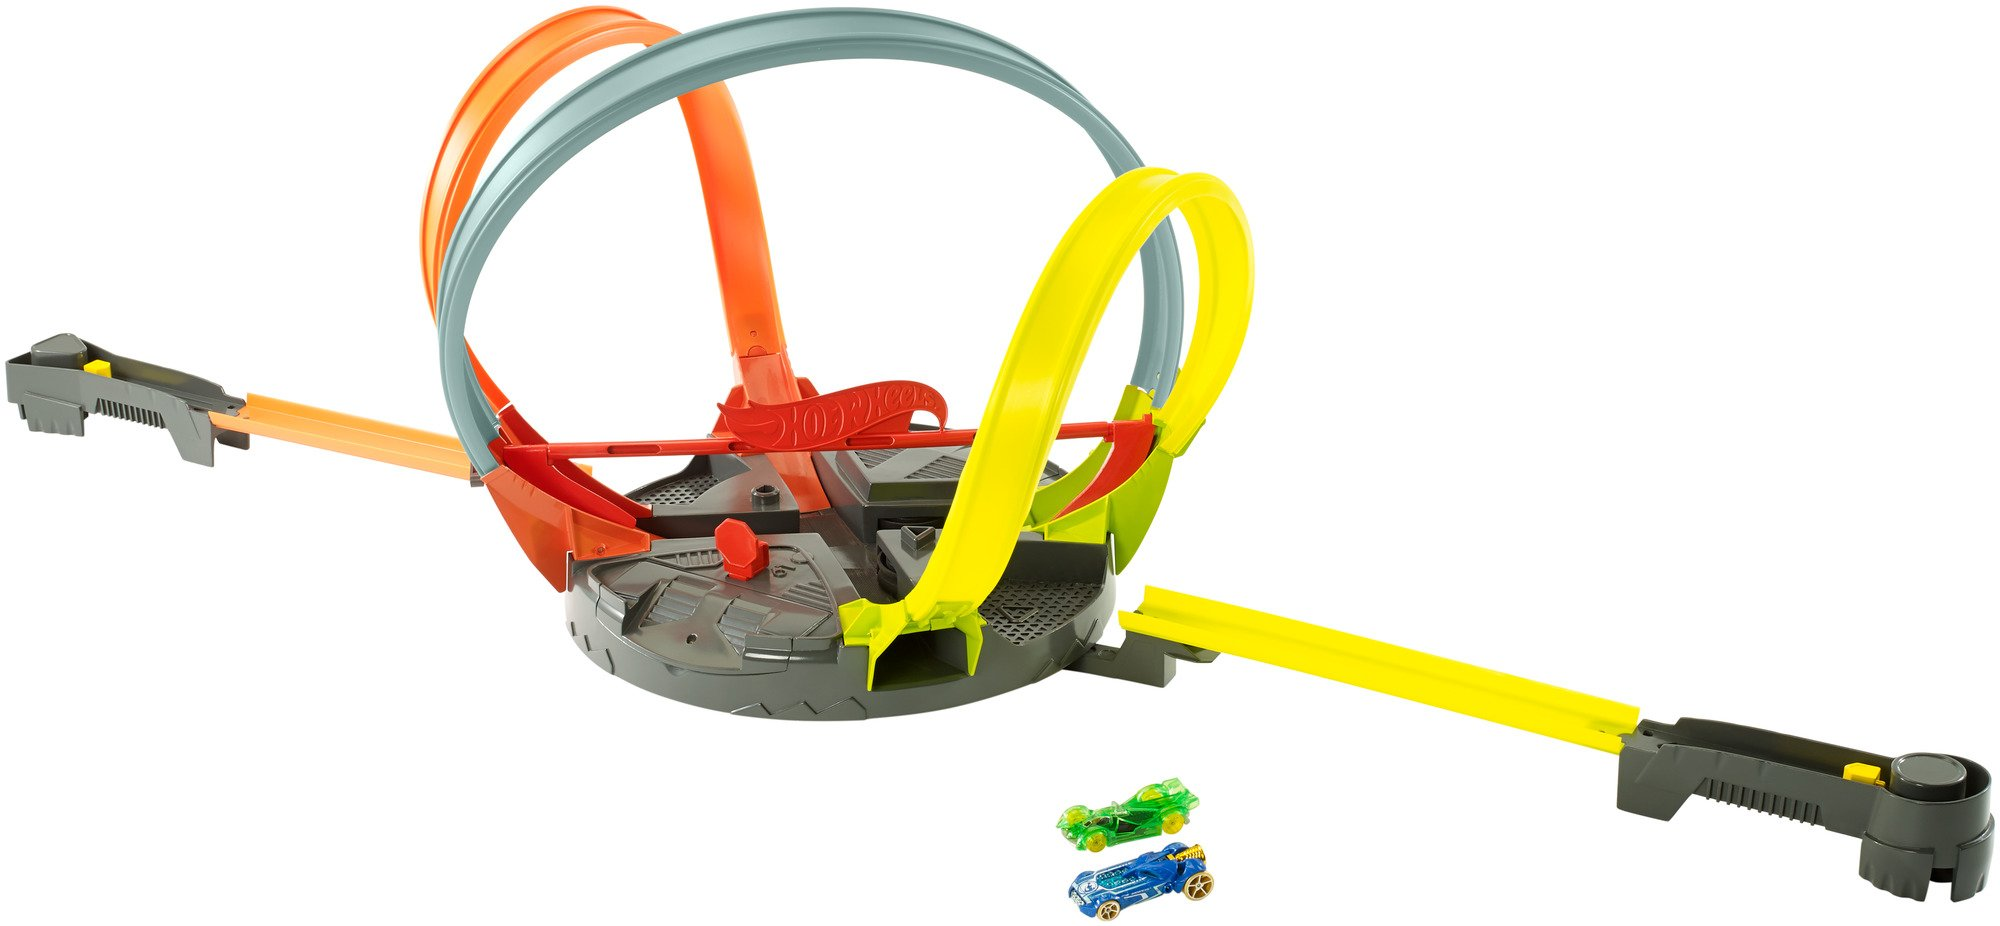 Hot Wheels Roto Revolution Track Playset